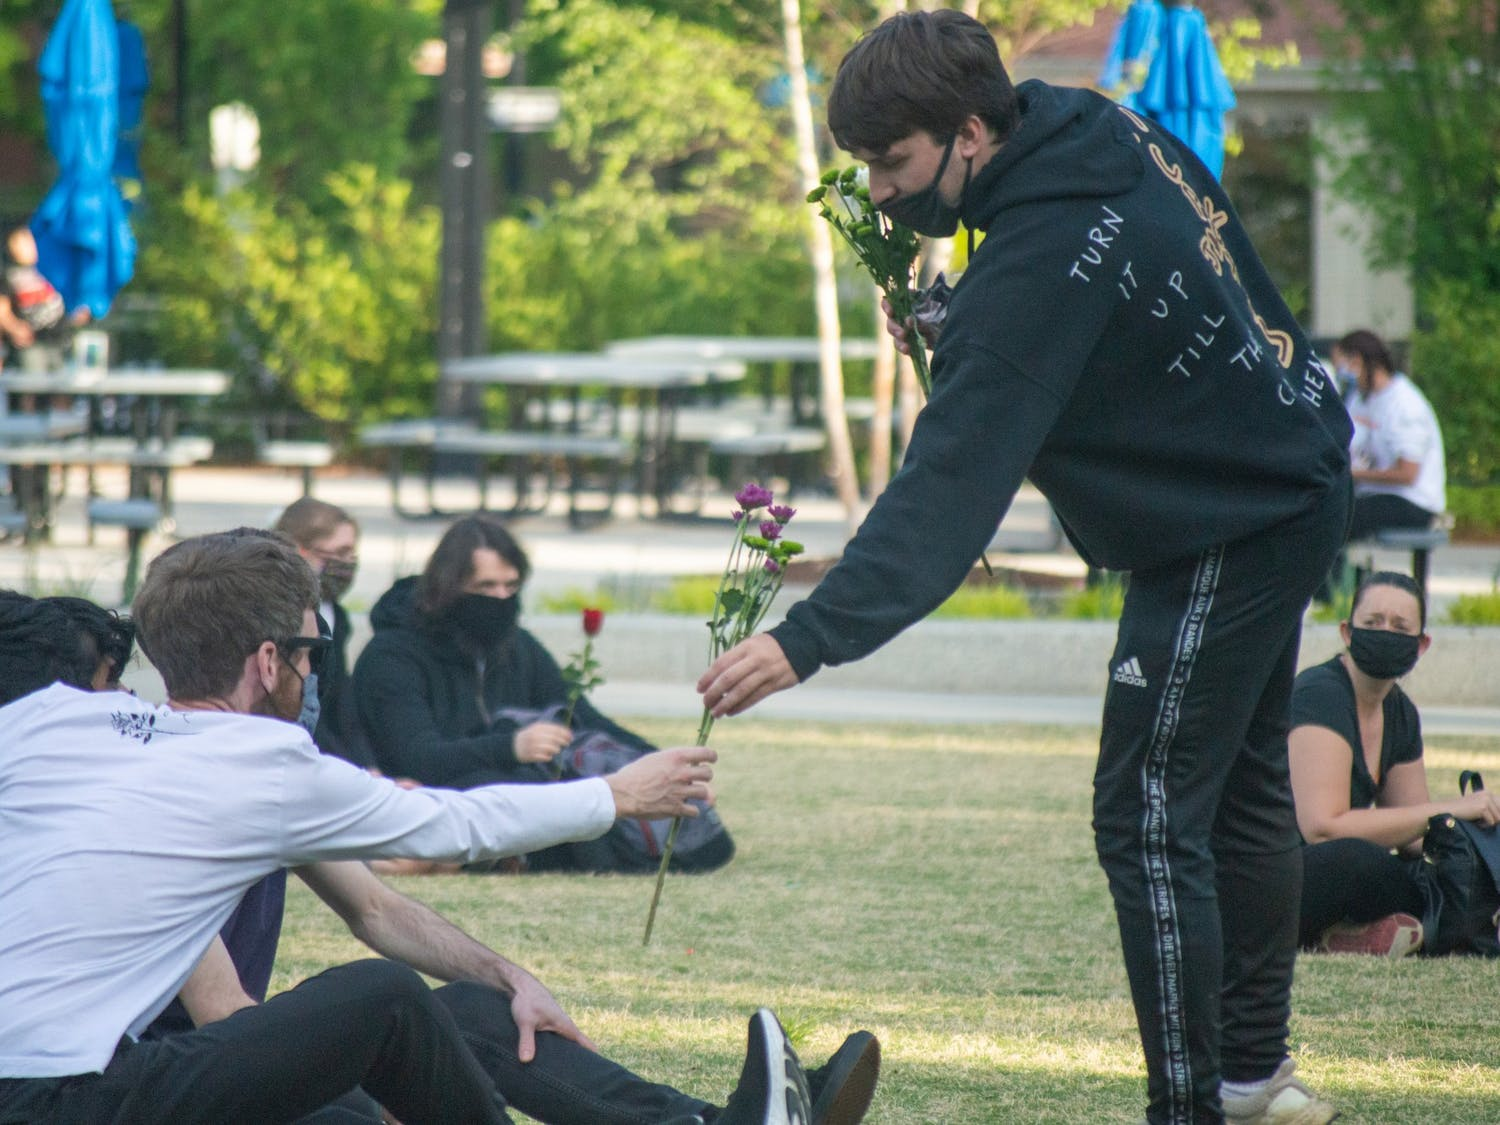 A volunteer at a community organized vigil in memory of Daunte Wright and Jaida Peterson hands out flowers. The vigil took place in Moore Square Park in downtown Raleigh on Sunday Apr. 18, 2021.